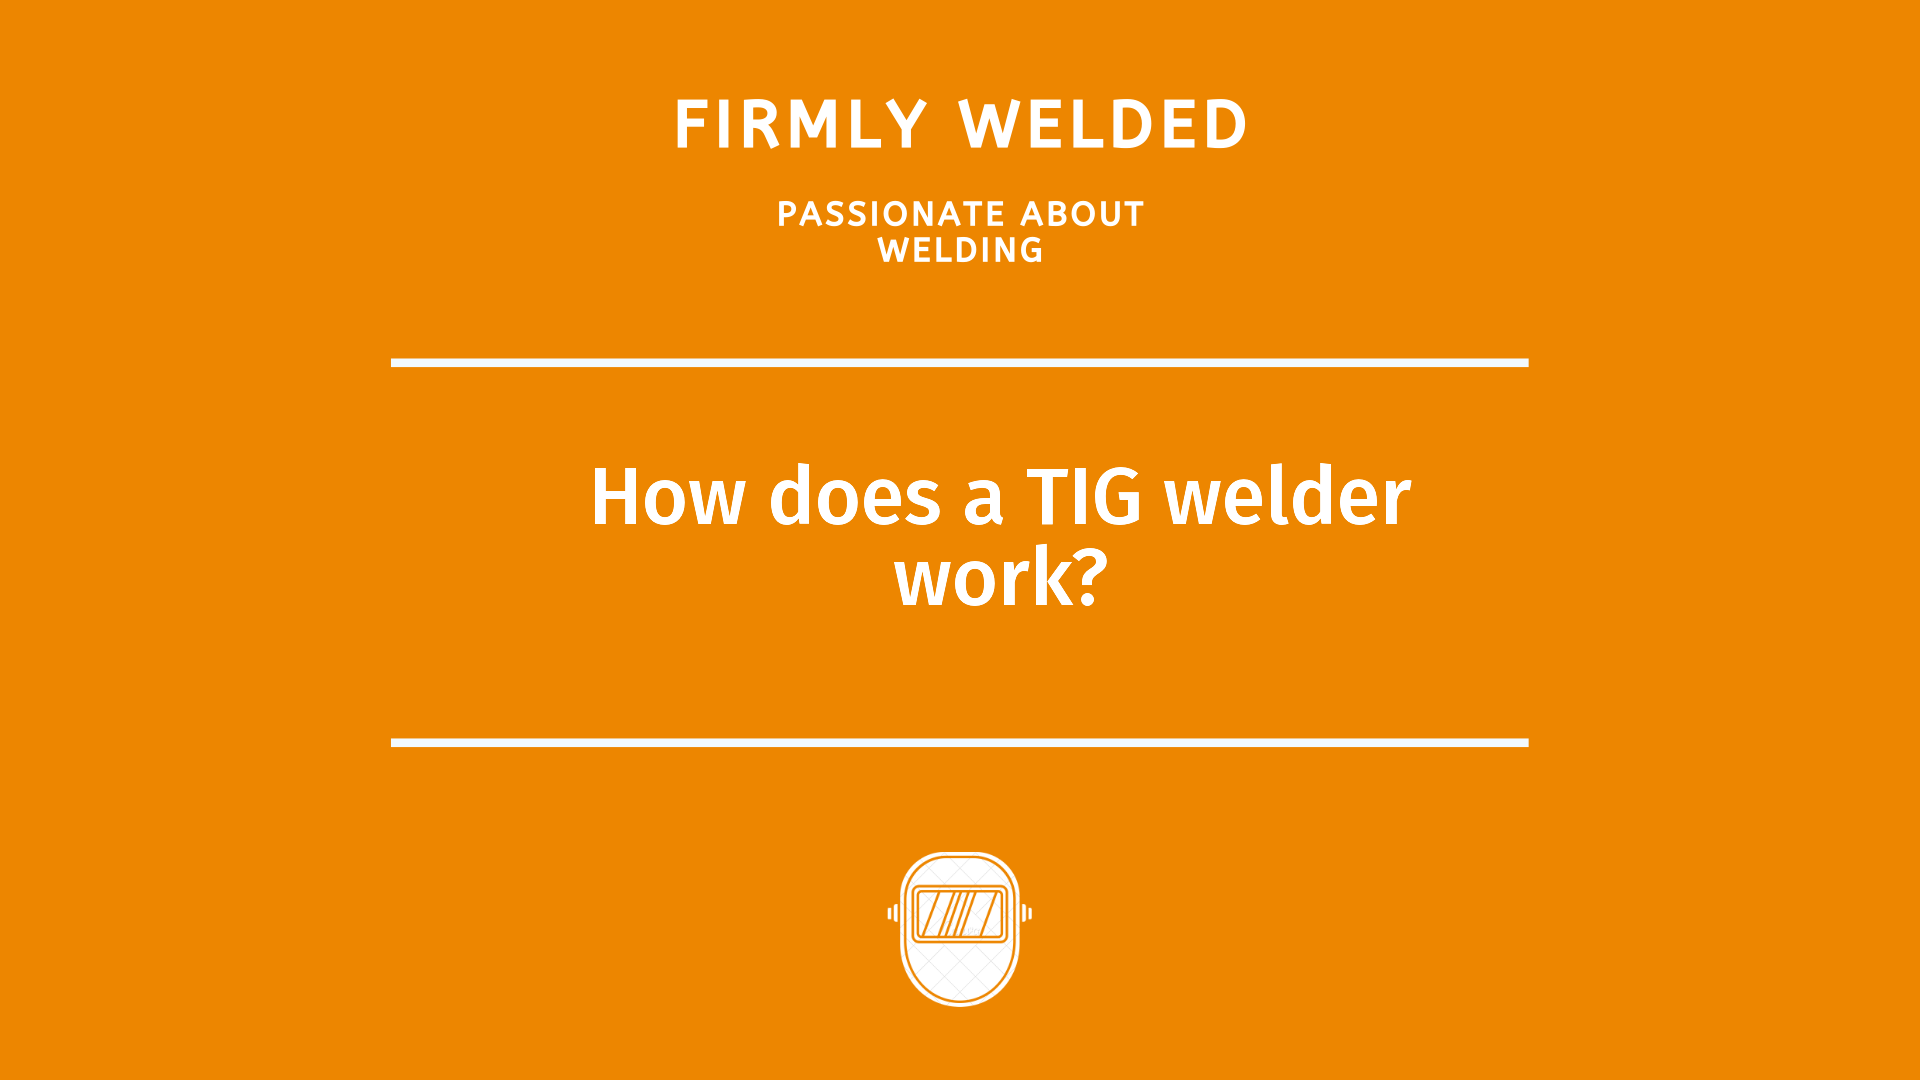 How does a TIG welder work?